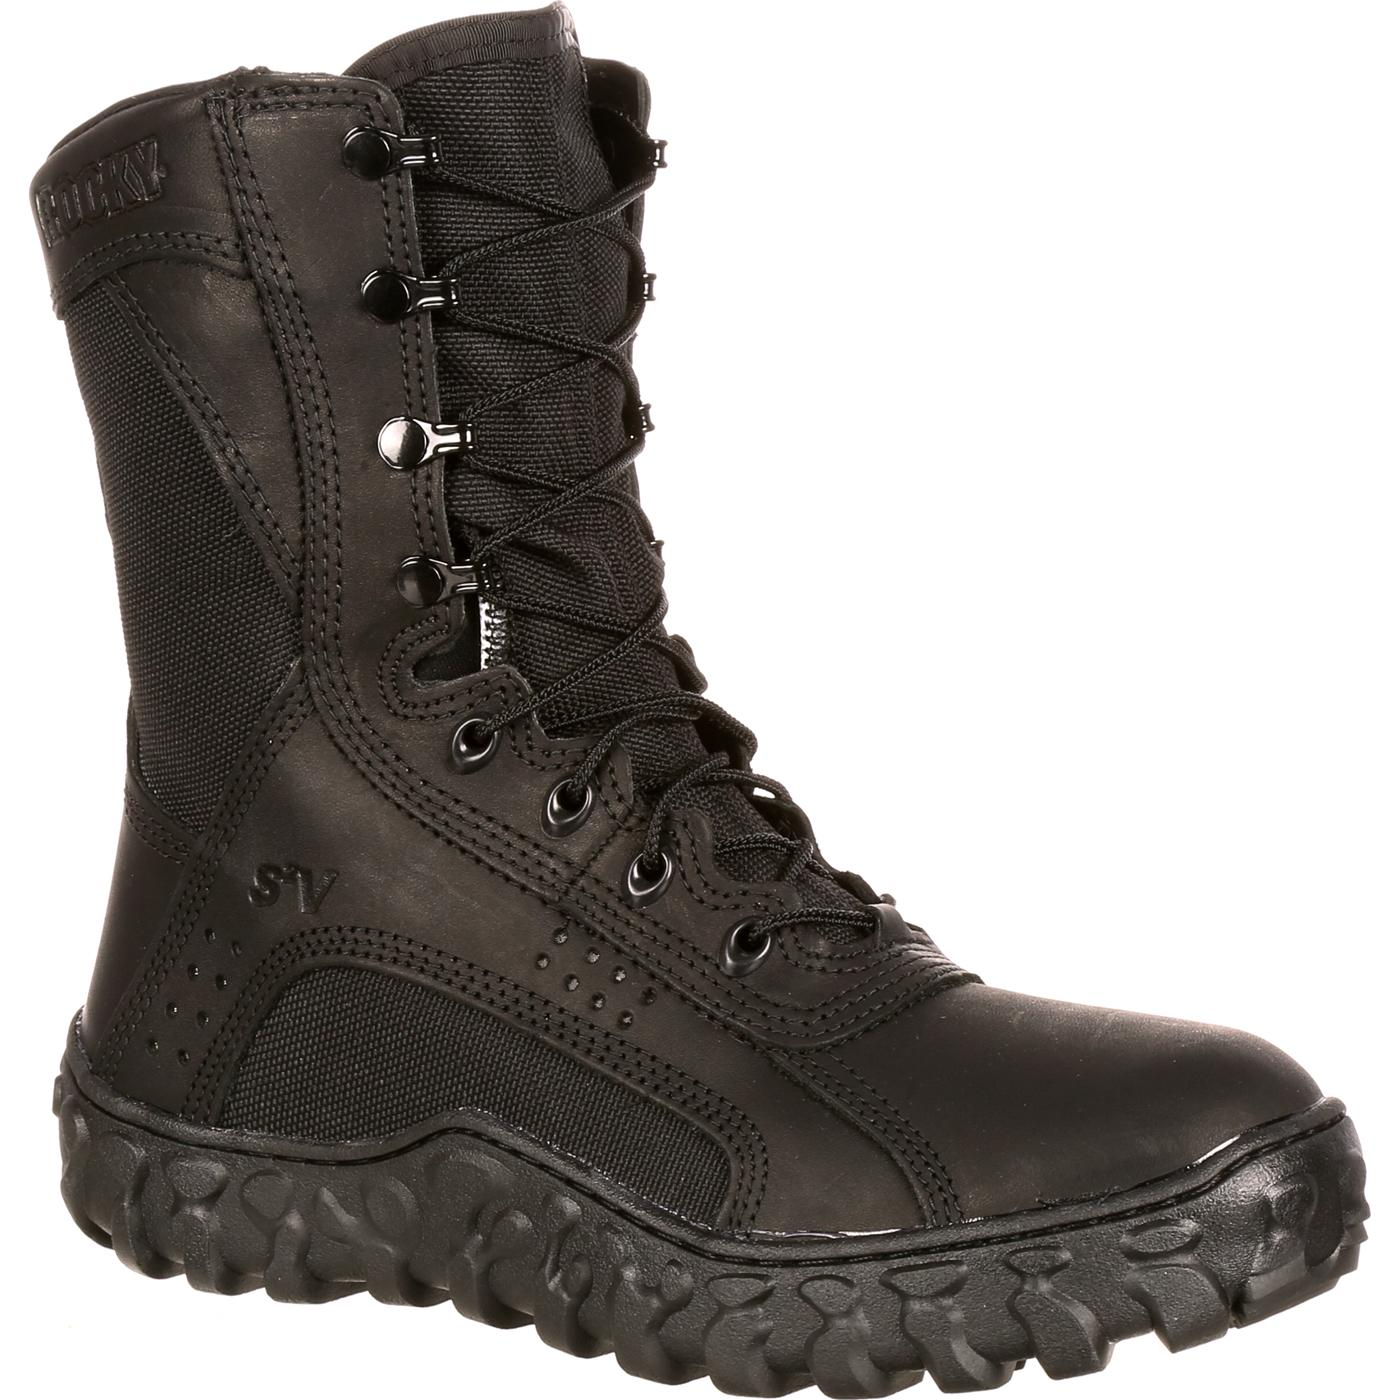 American Made Black Military Boots Rocky S2v Fq0000102